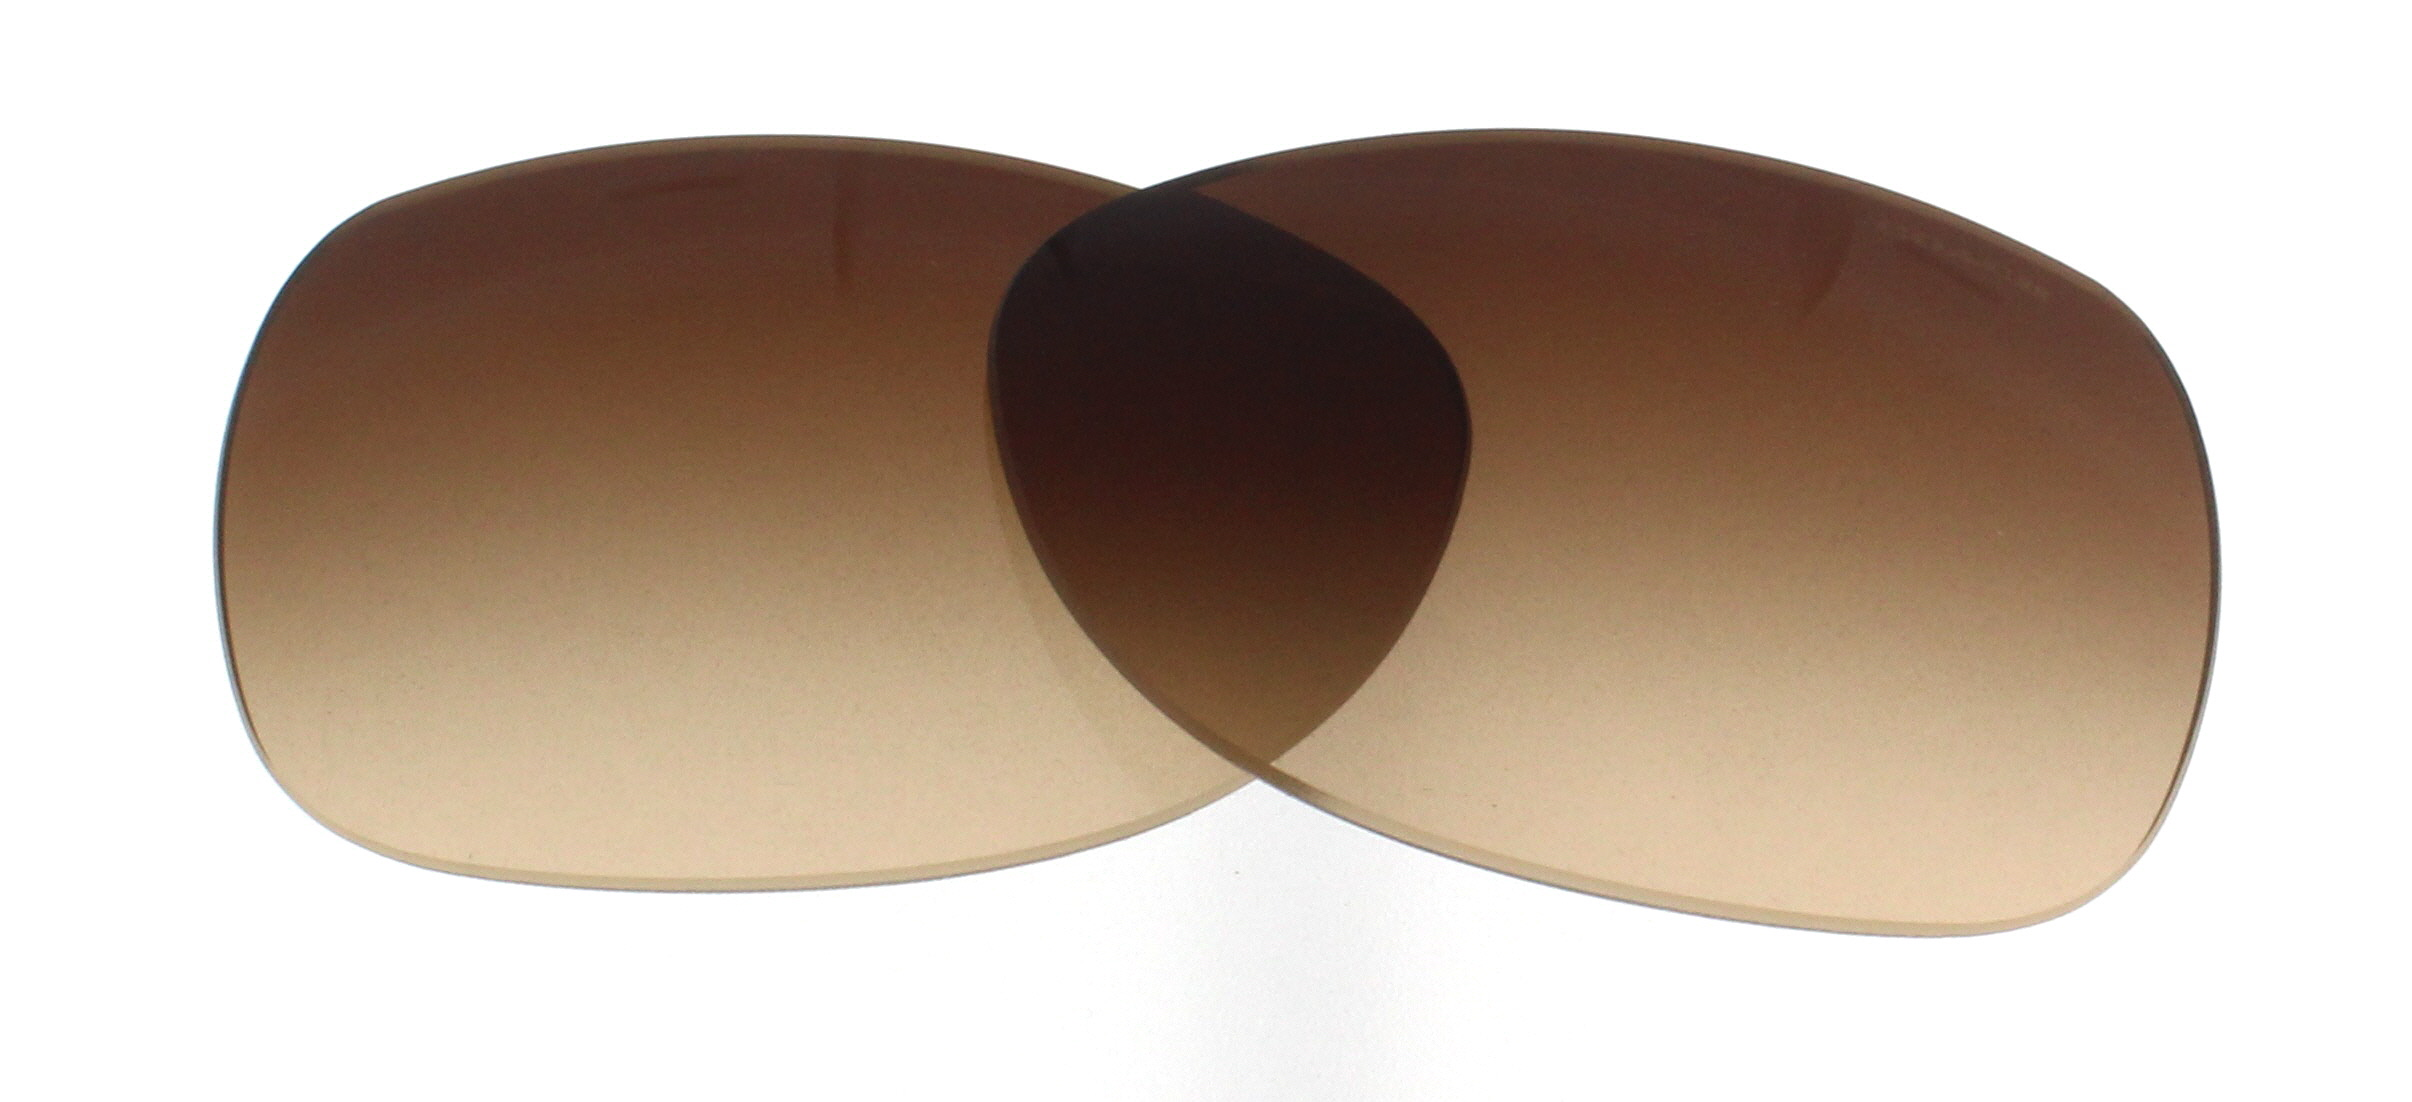 9102d9c16718 Image is loading COACH-Replacement-Lenses-HC7054-L129-Brown-Gradient-56MM